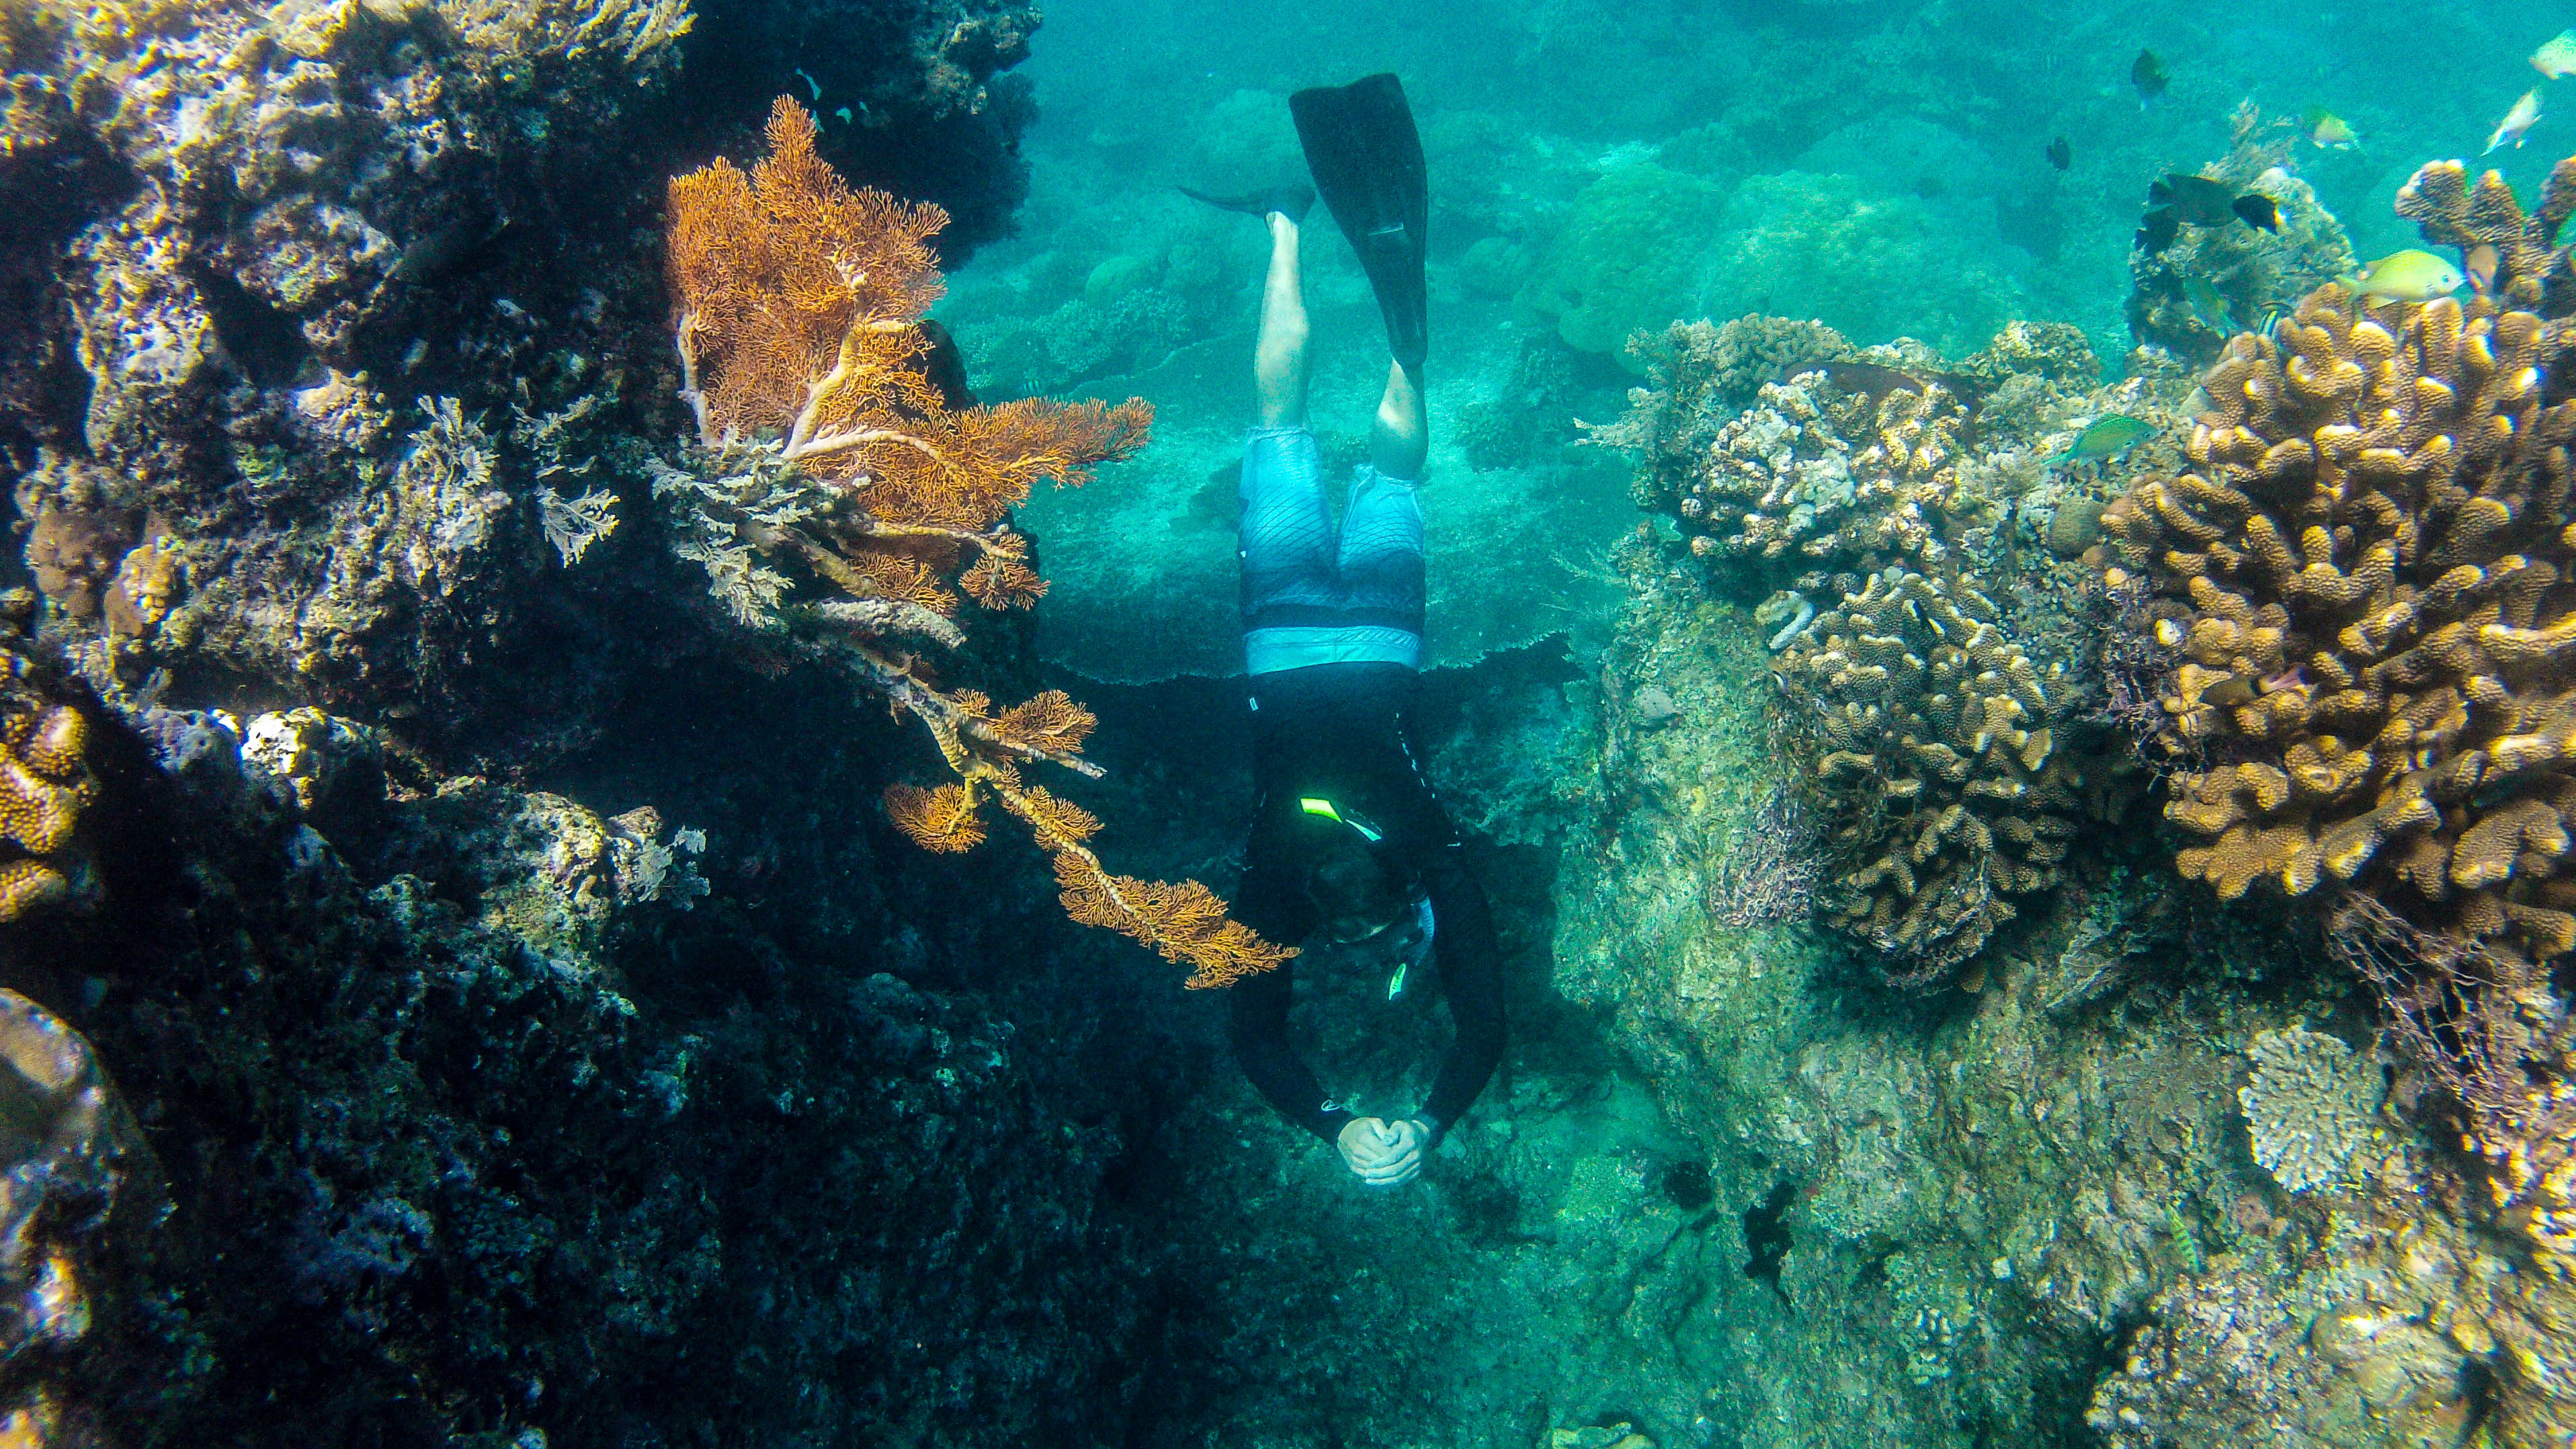 Adam Maire, Fins to Spurs, Back Underwater, Gili Trawangan, indonesia, Cave exploration